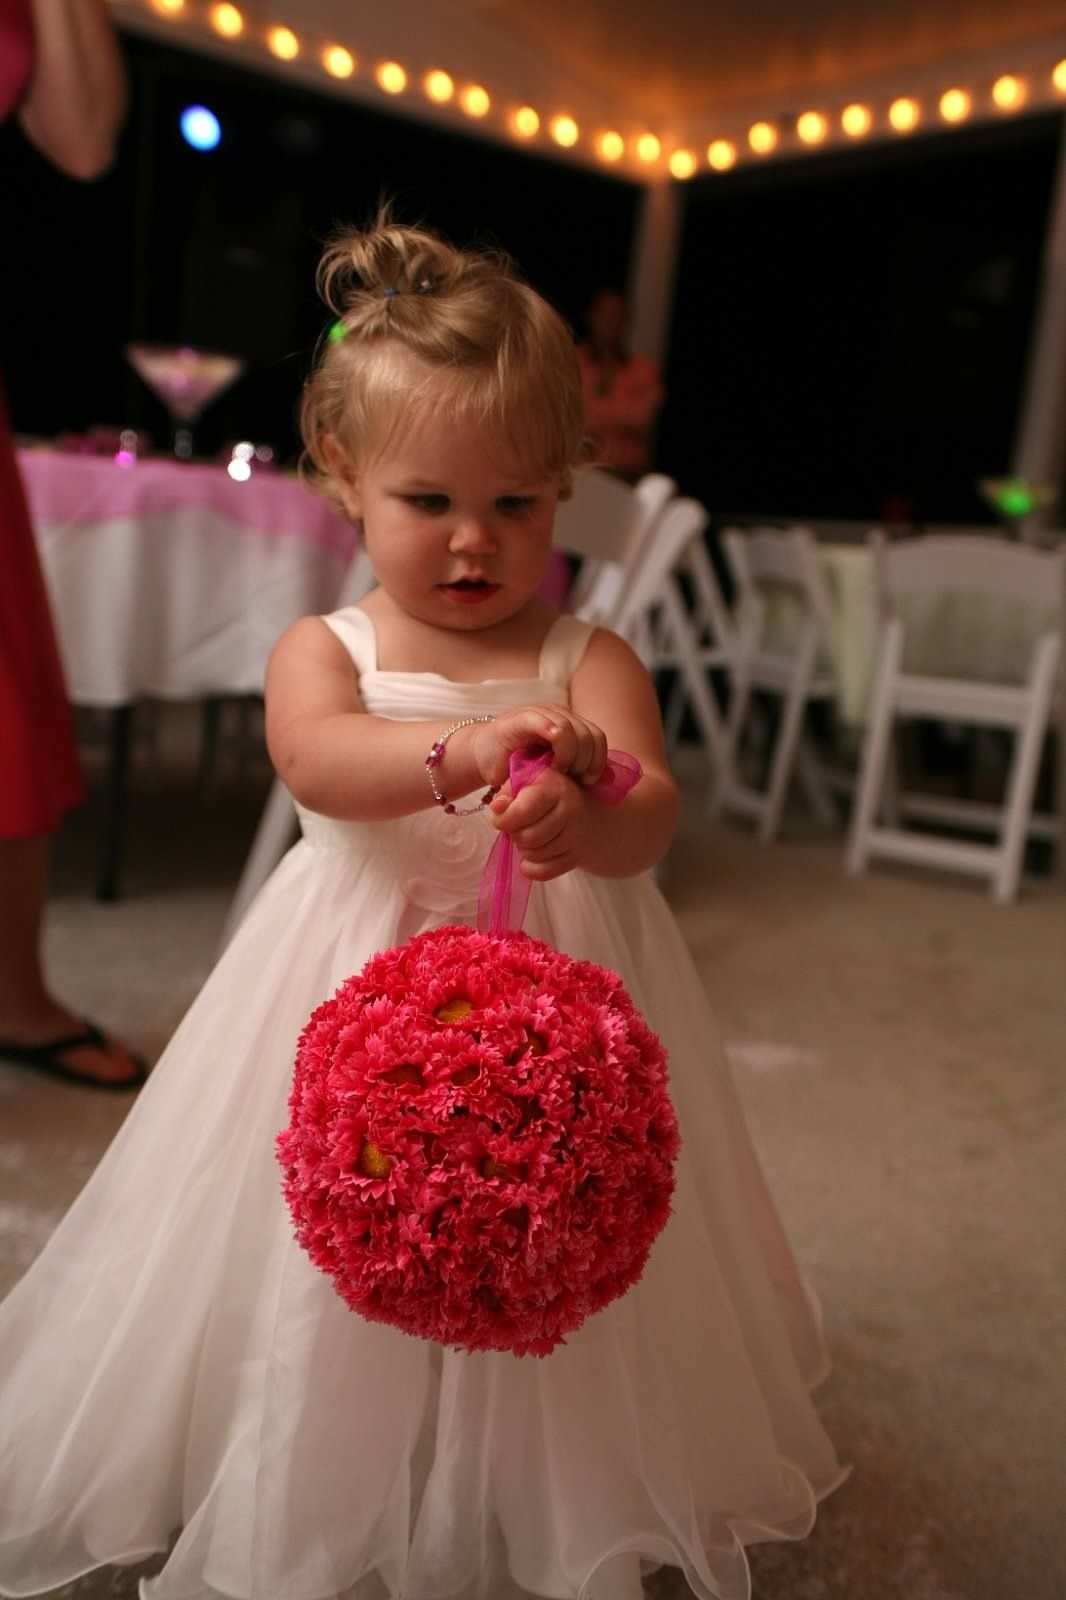 Barn wedding venues near joplin mo  Flower Bouquet Balls I made for the Matron of Honor Bridemaids were